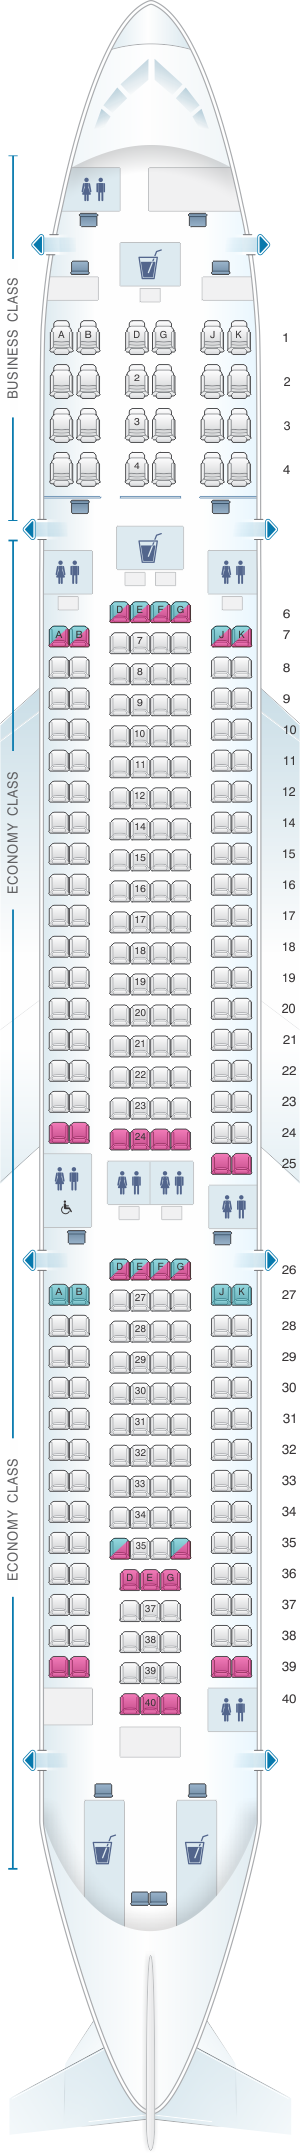 Seat map for Fiji Airways Airbus A330 200